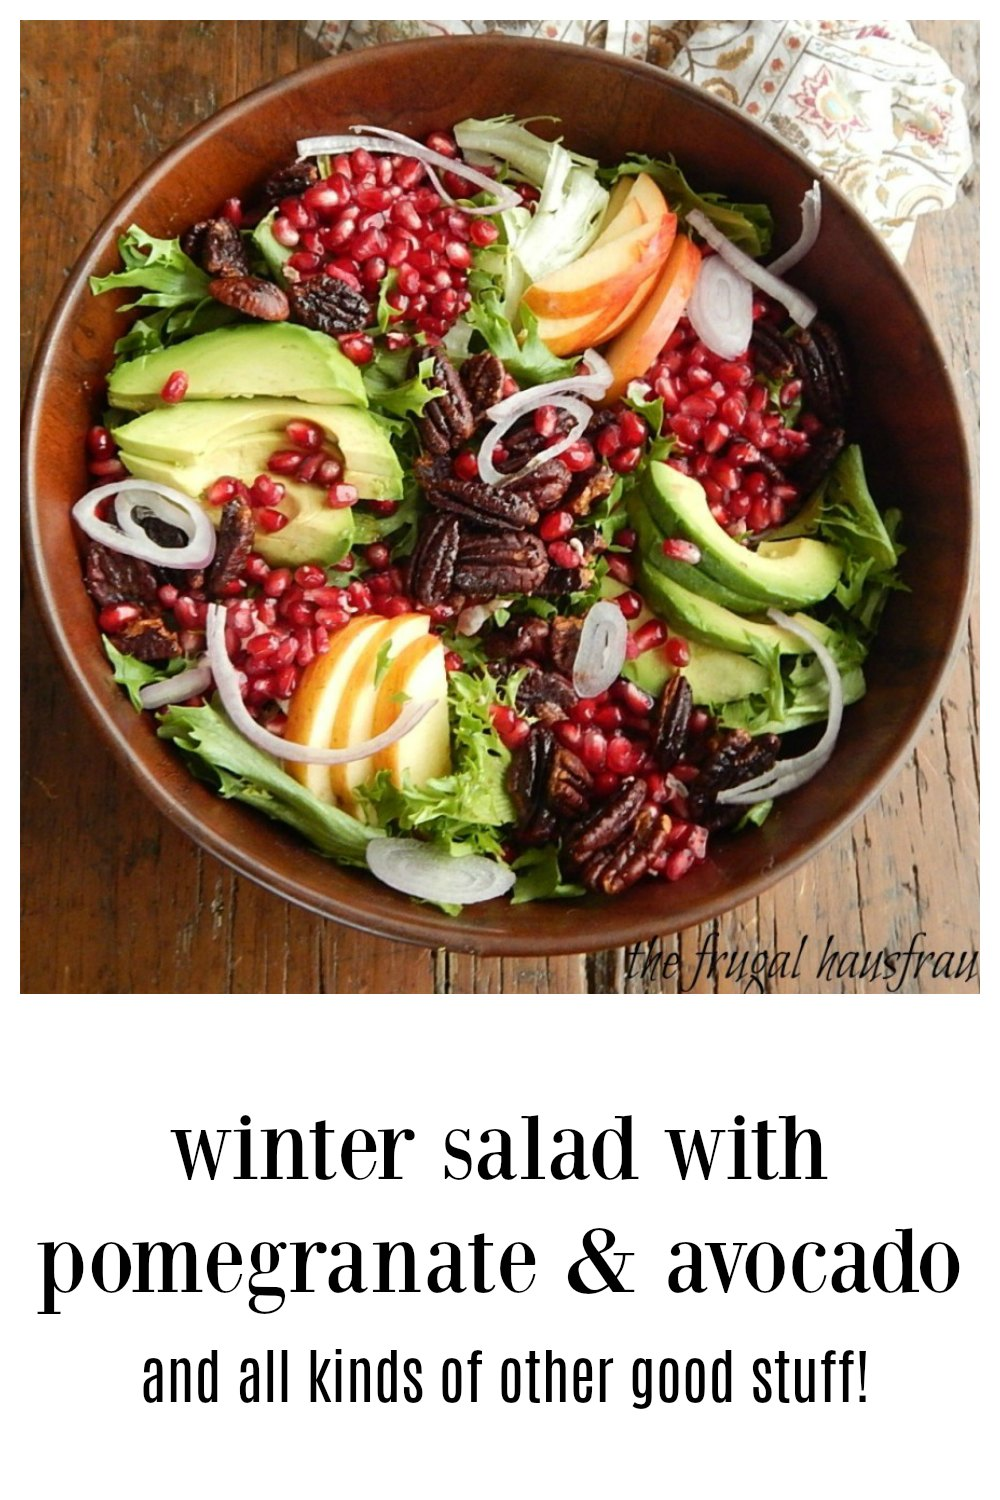 Winter Salad with Avocado, Pomegranate is a fabulous salad for any winter holiday! It's everything good. Refashion with leftover turkey after the holidays. Choice of three dressings. #WinterSalad #WinterSaladAvocadoPomegranateApplePecans #HolidaySalad